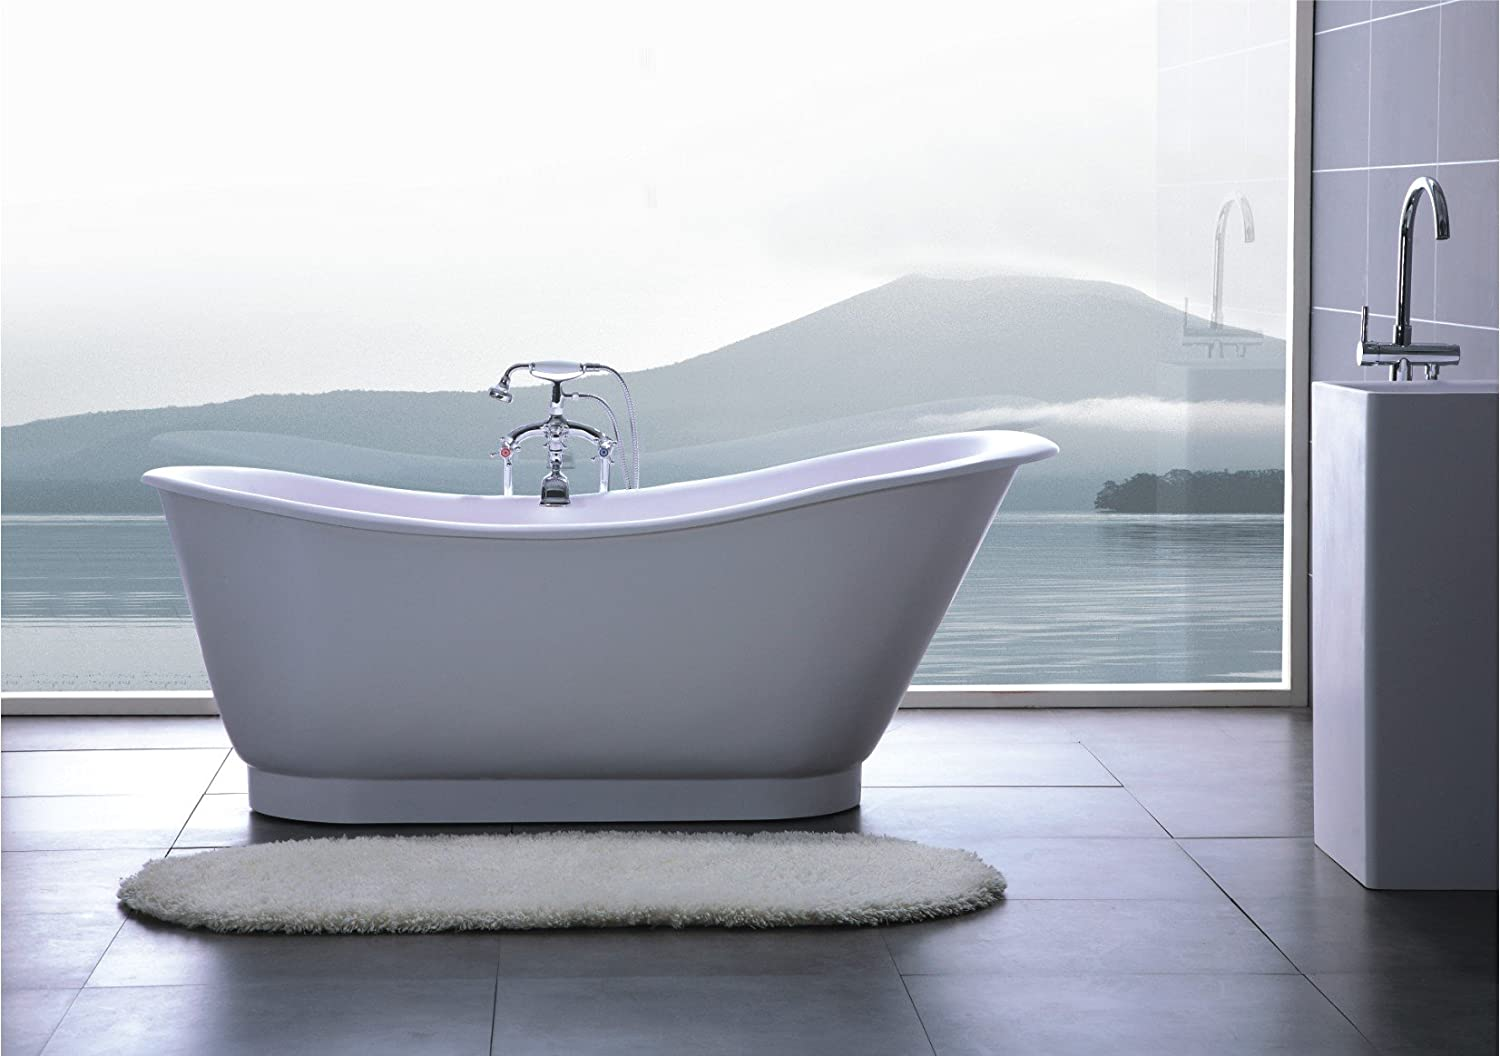 Amazon.com: Modern Bathtub - Soaking Bathtub - Freestanding Bathtub ...